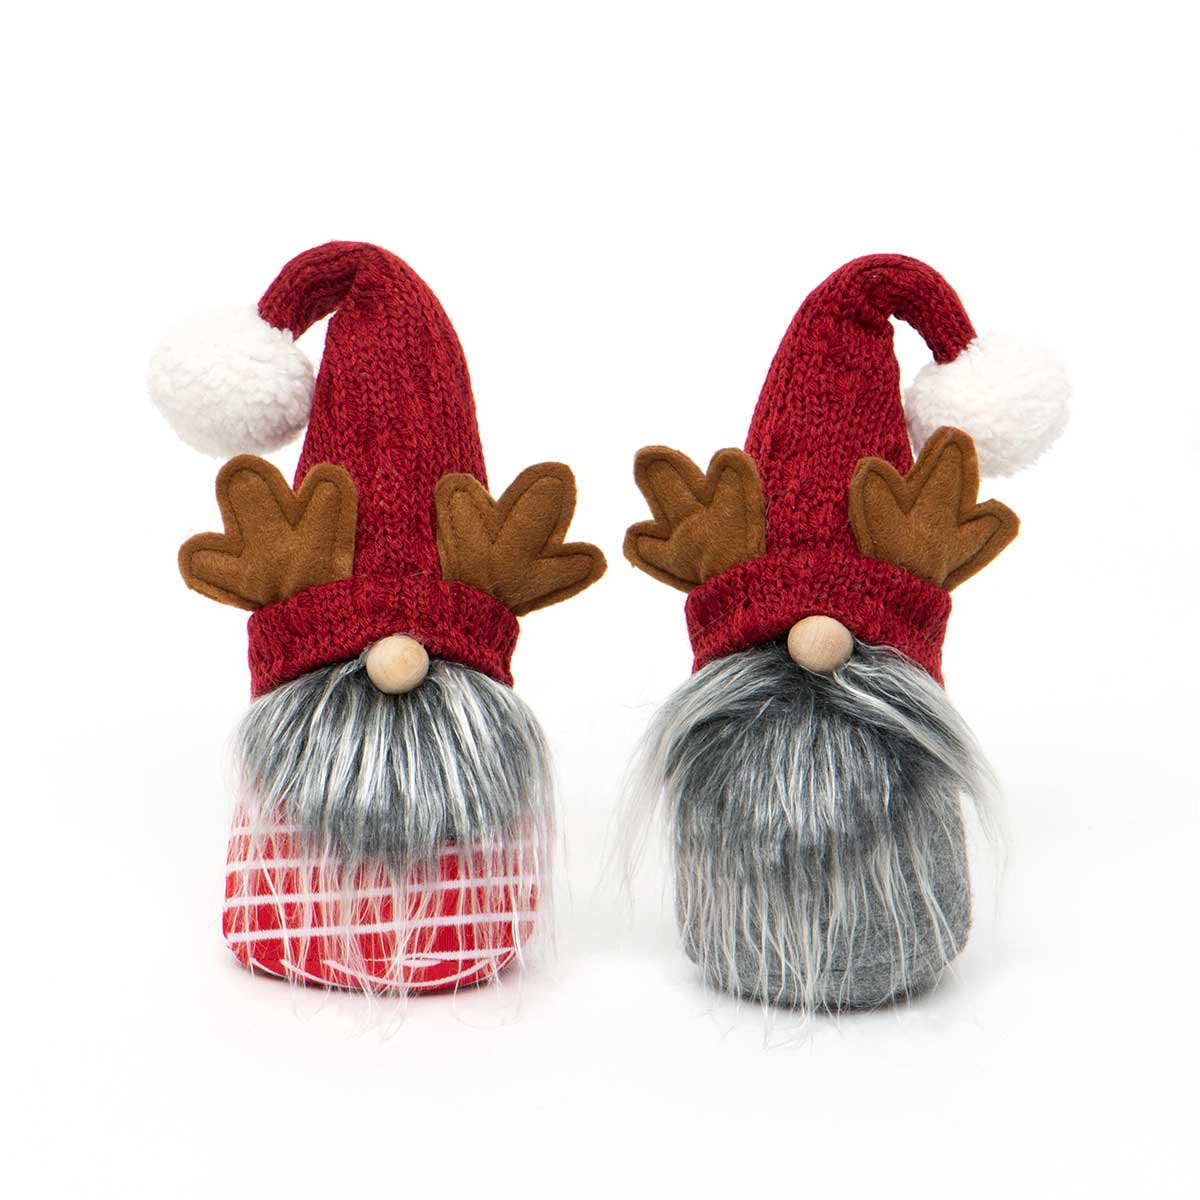 GNOME WITH ANTLERS, WIRED SWEATER HAT,